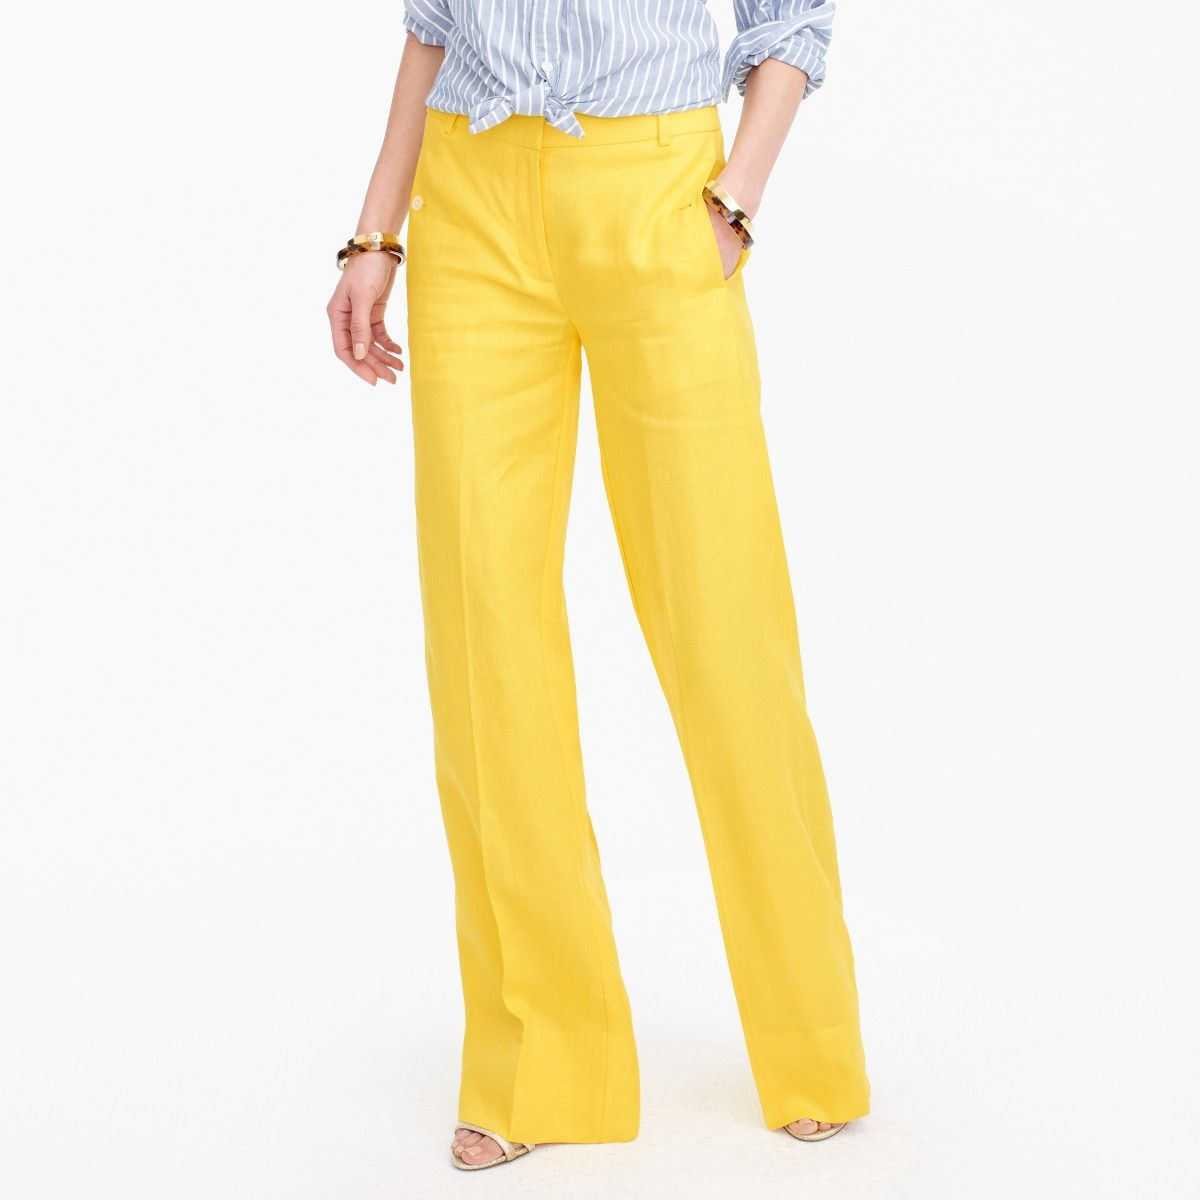 Yellow Linen Must Have For Spring And Summer Yellow Linen Pants Linen Pants Pants For Women [ 1200 x 1200 Pixel ]